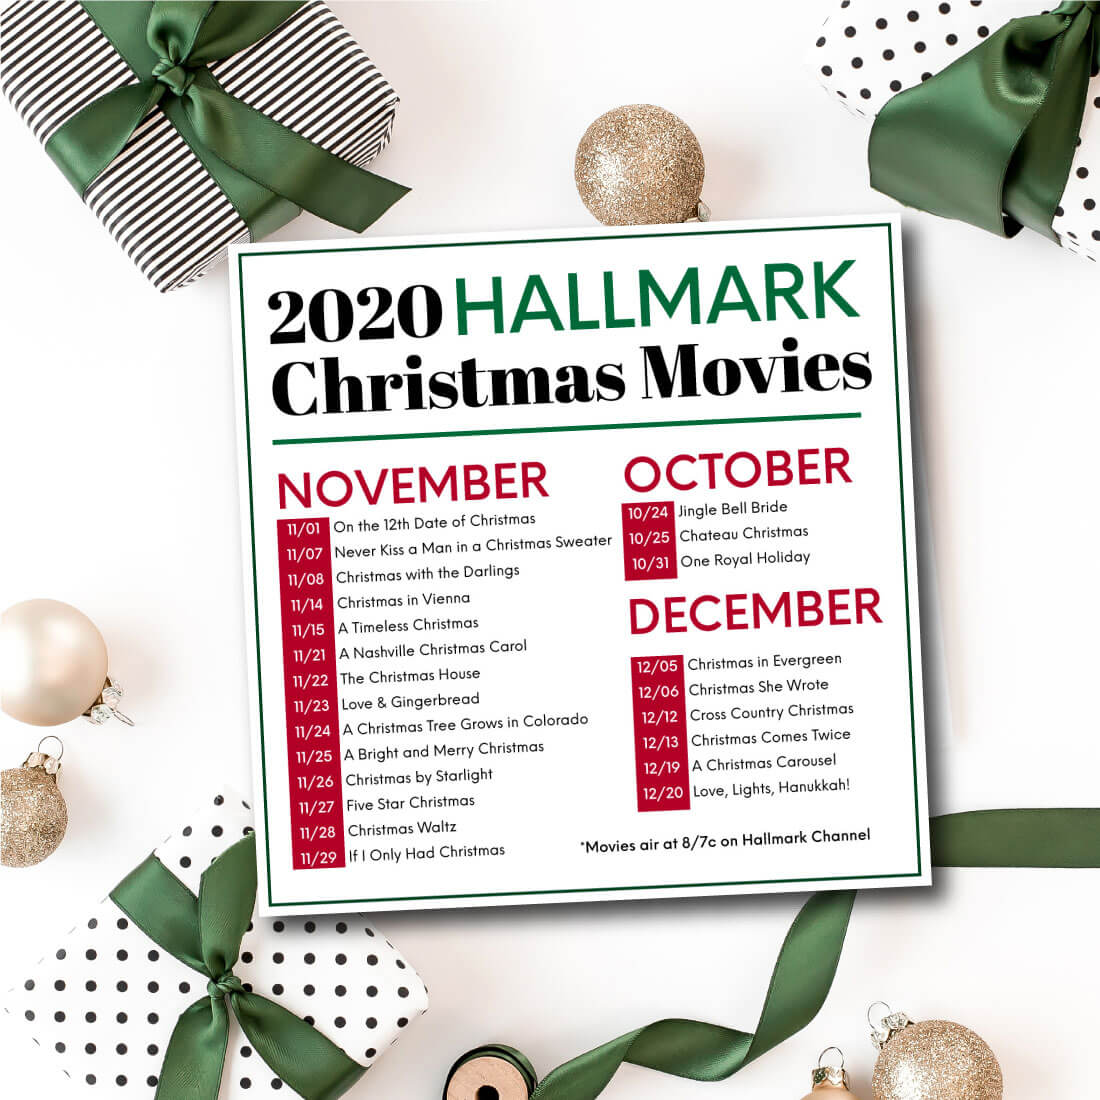 Hallmark Christmas Movies for 2020